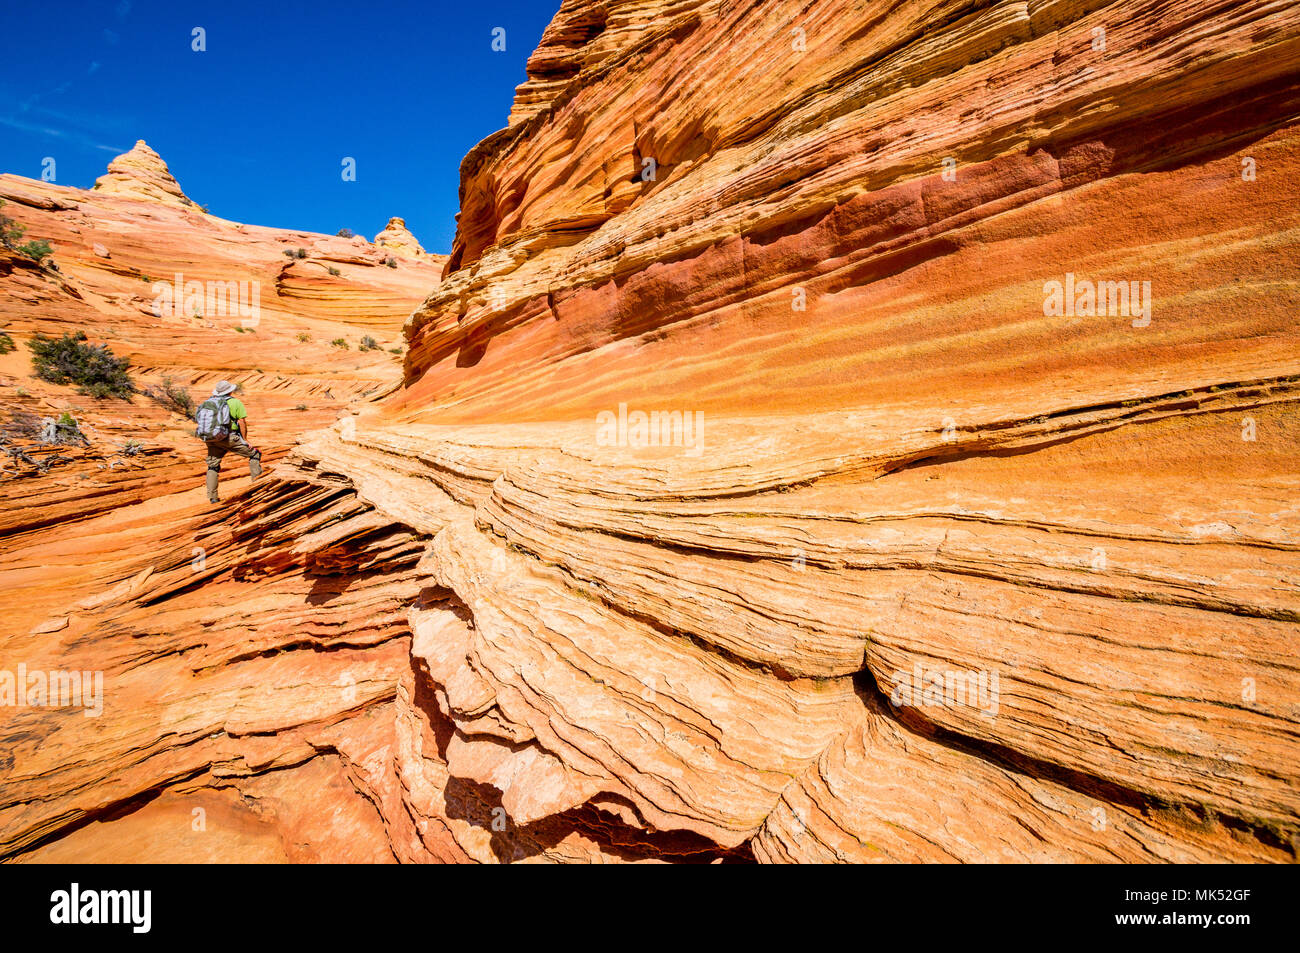 Male Hiker with pack small compared to colorful sandstone formations Cottonwood area South Coyote Buttes Vermilion Cliffs National Monument Arizona - Stock Image